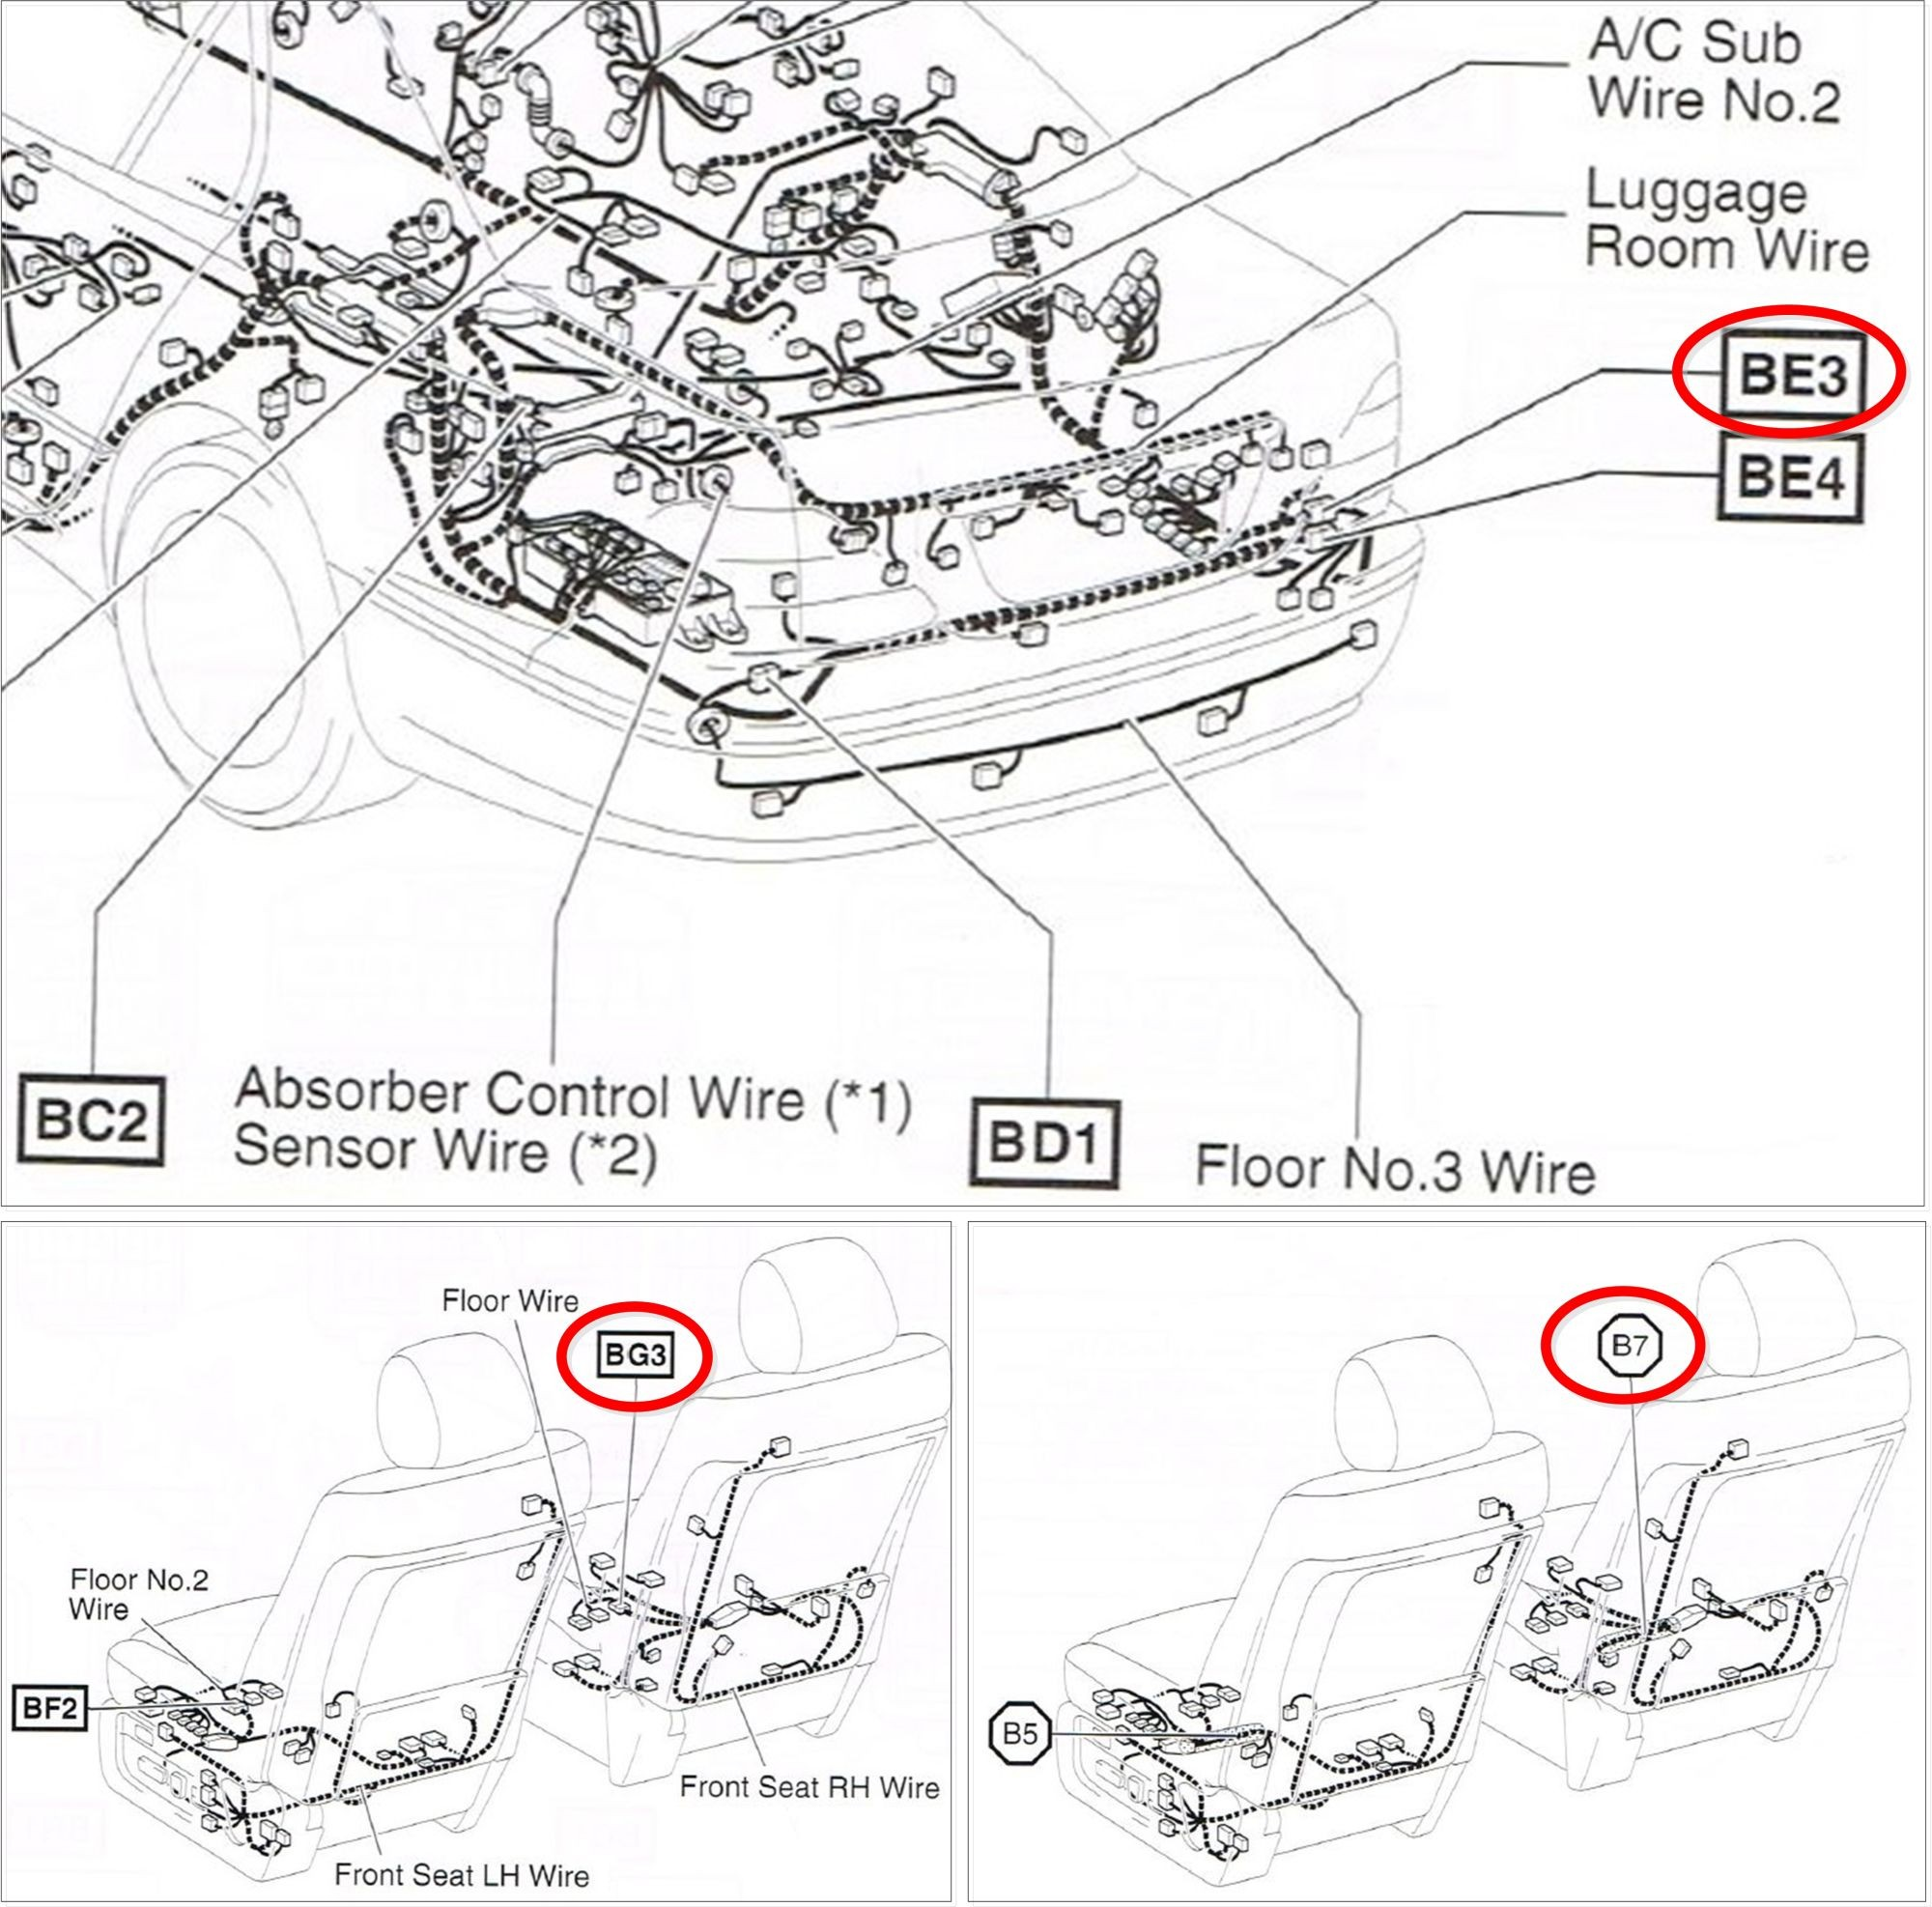 [DIAGRAM] 2002 Lexus Es300 Headlight Diagram Wiring